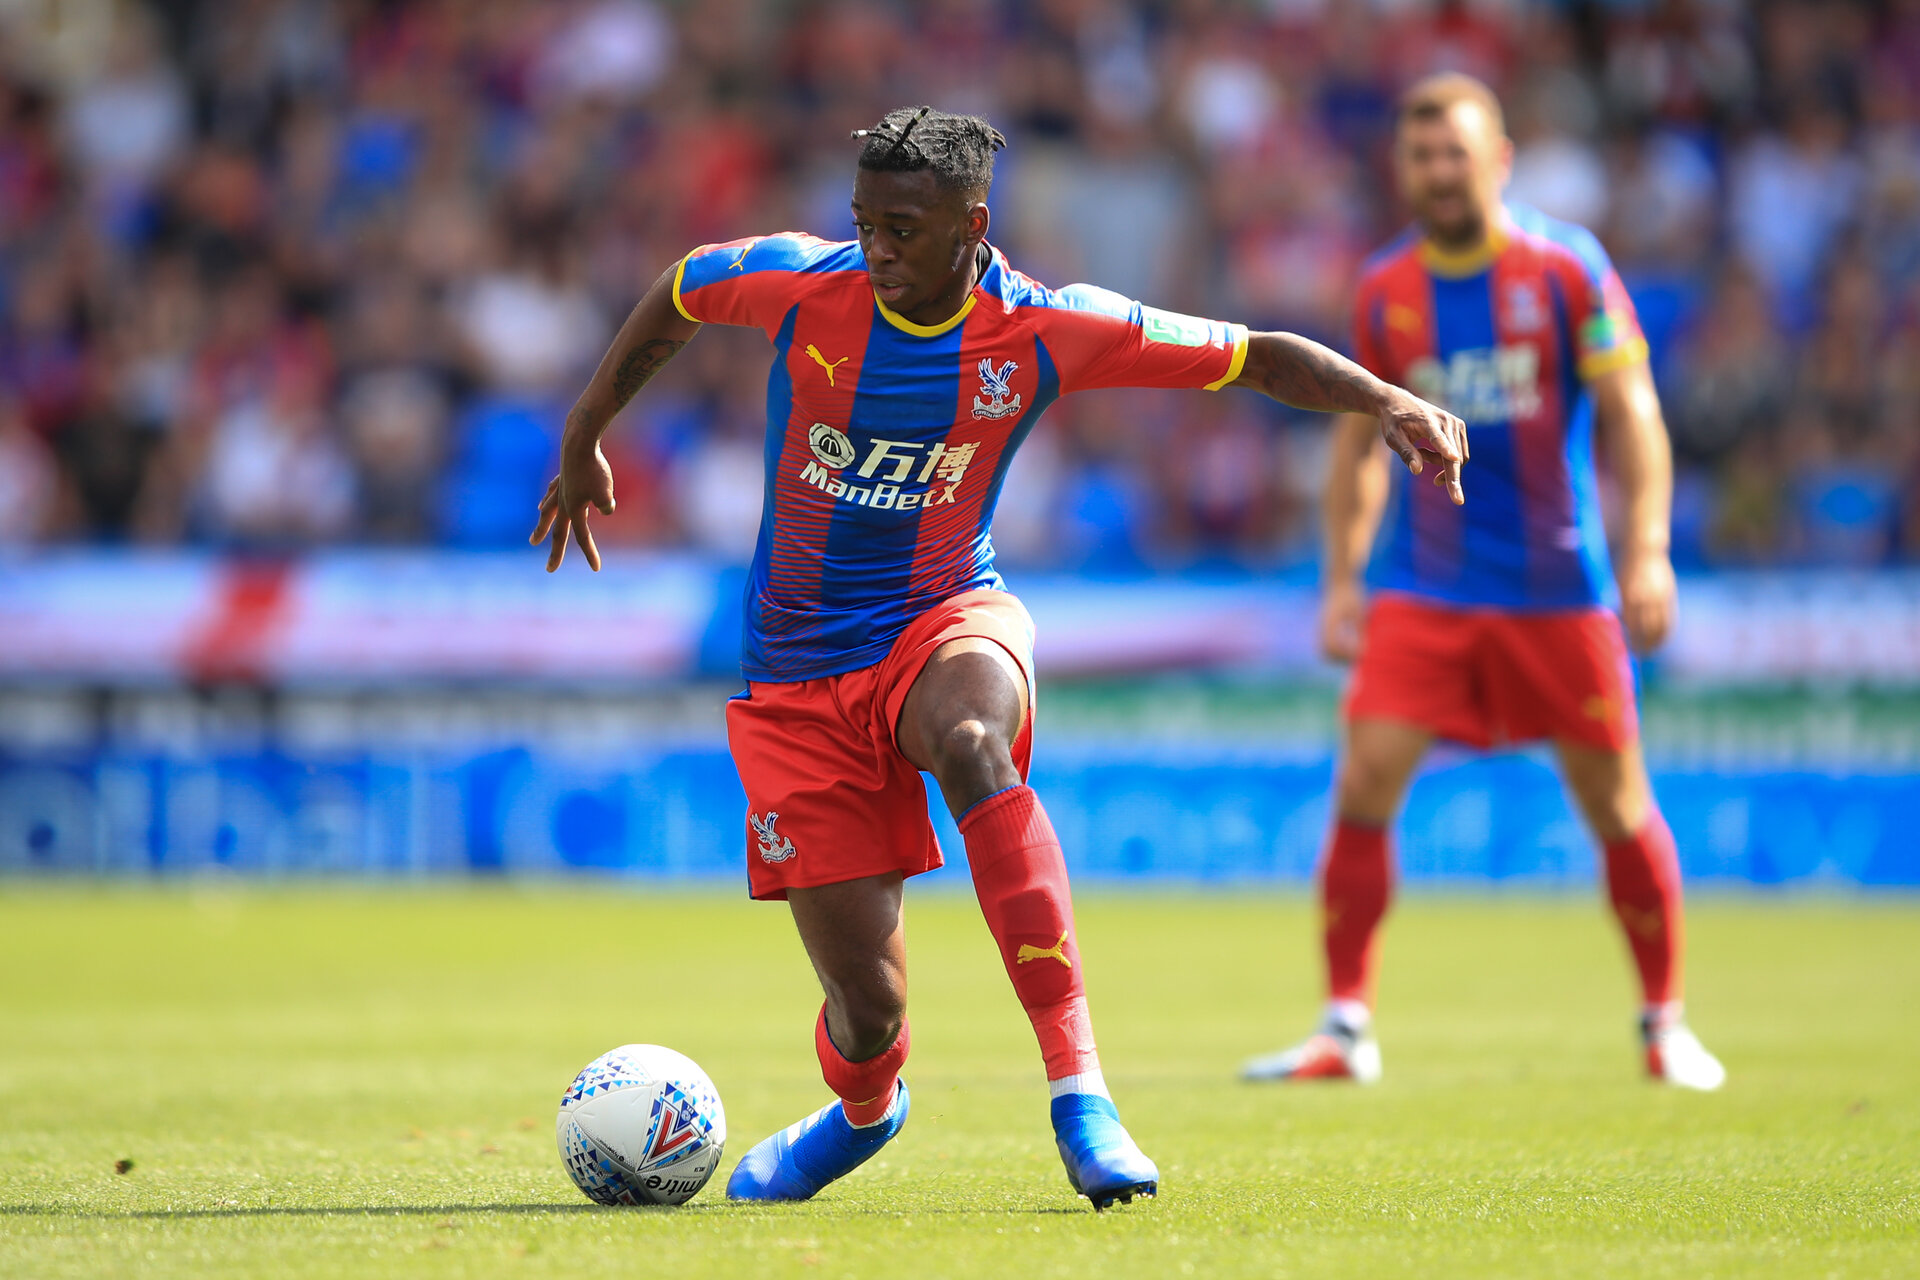 READING, ENGLAND - JULY 28: Aaron Wan-Bissaka of Crystal Palace during the Pre-Season Friendly between Reading and Crystal Palace at Madejski Stadium on July 28, 2018 in Reading, England. (Photo by Marc Atkins/Getty Images)